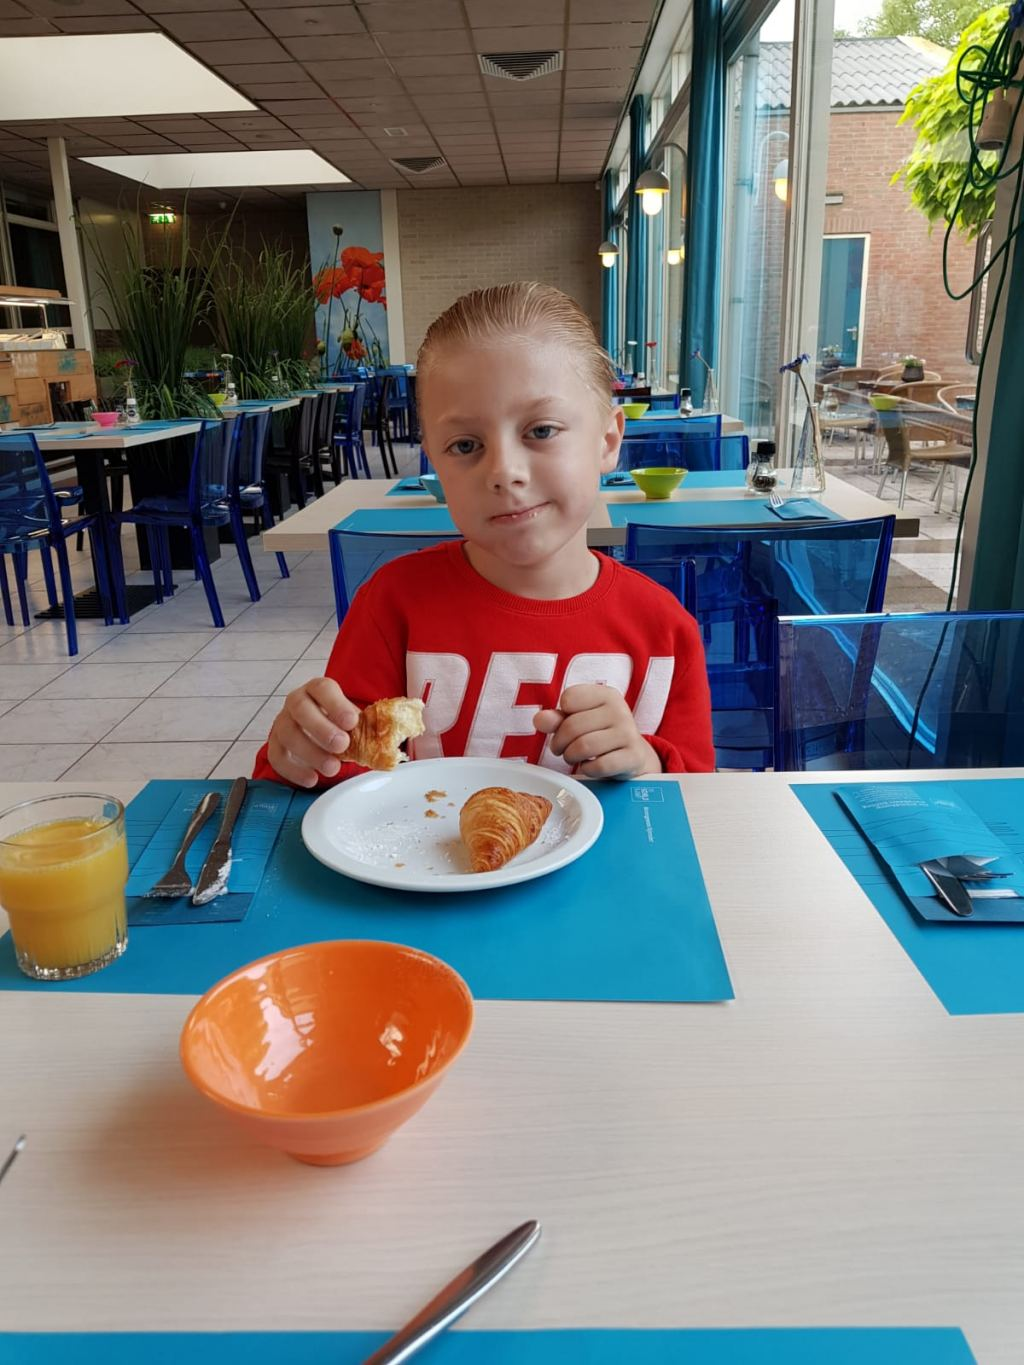 mannenweekend_vader_zoon_weekend_mamablogger_marisca_Mamablogger_